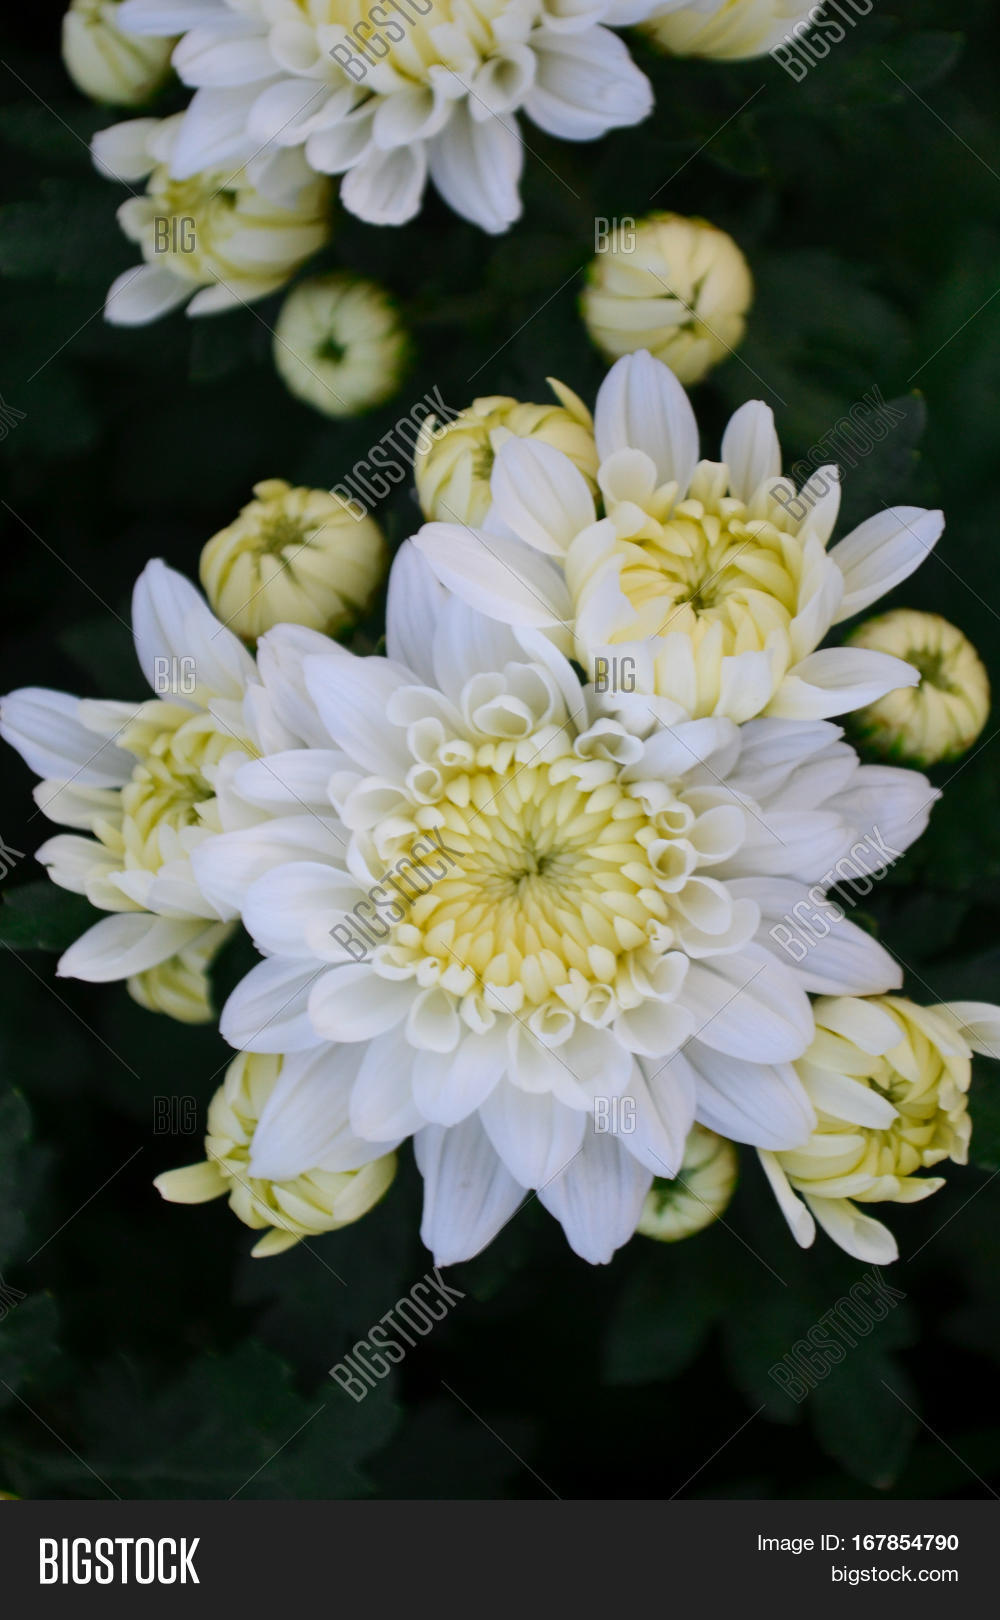 These white flowers image photo free trial bigstock these are white flowers called chrysanthemum or florists mun or mums flowers and a sacred mightylinksfo